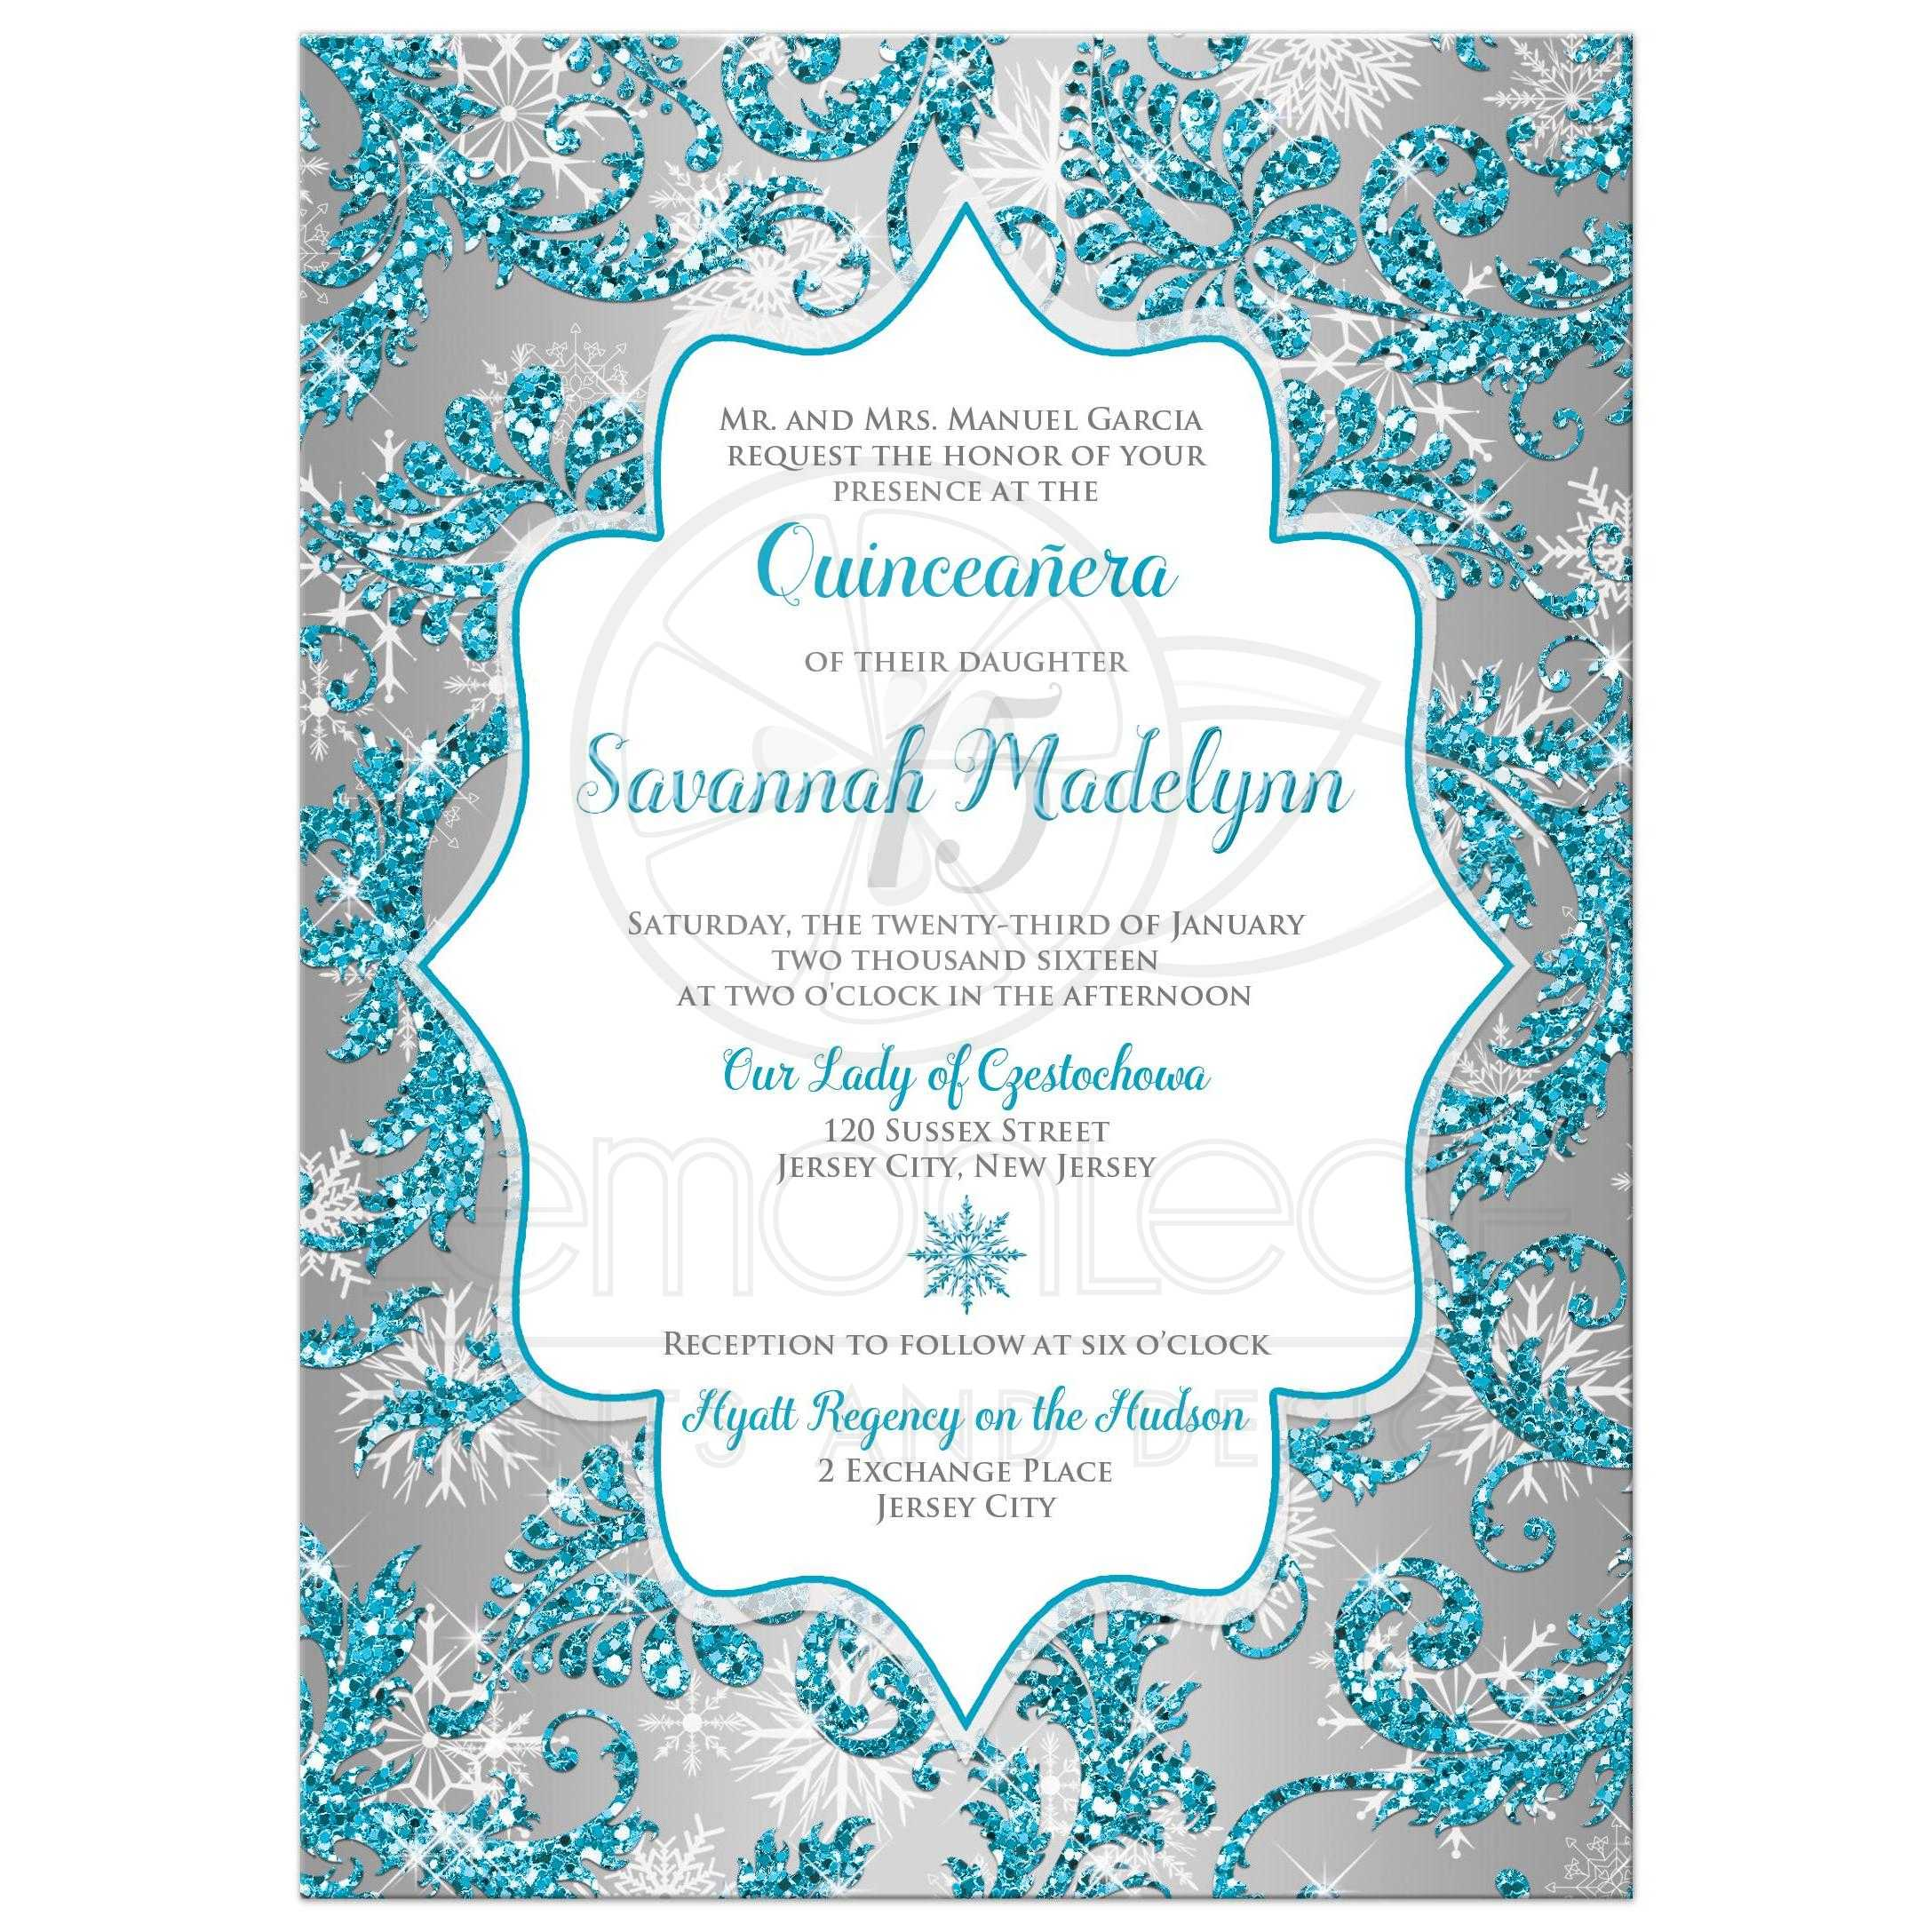 Quinceañera Invitation | Winter Wonderland Turquoise, Silver Faux ...